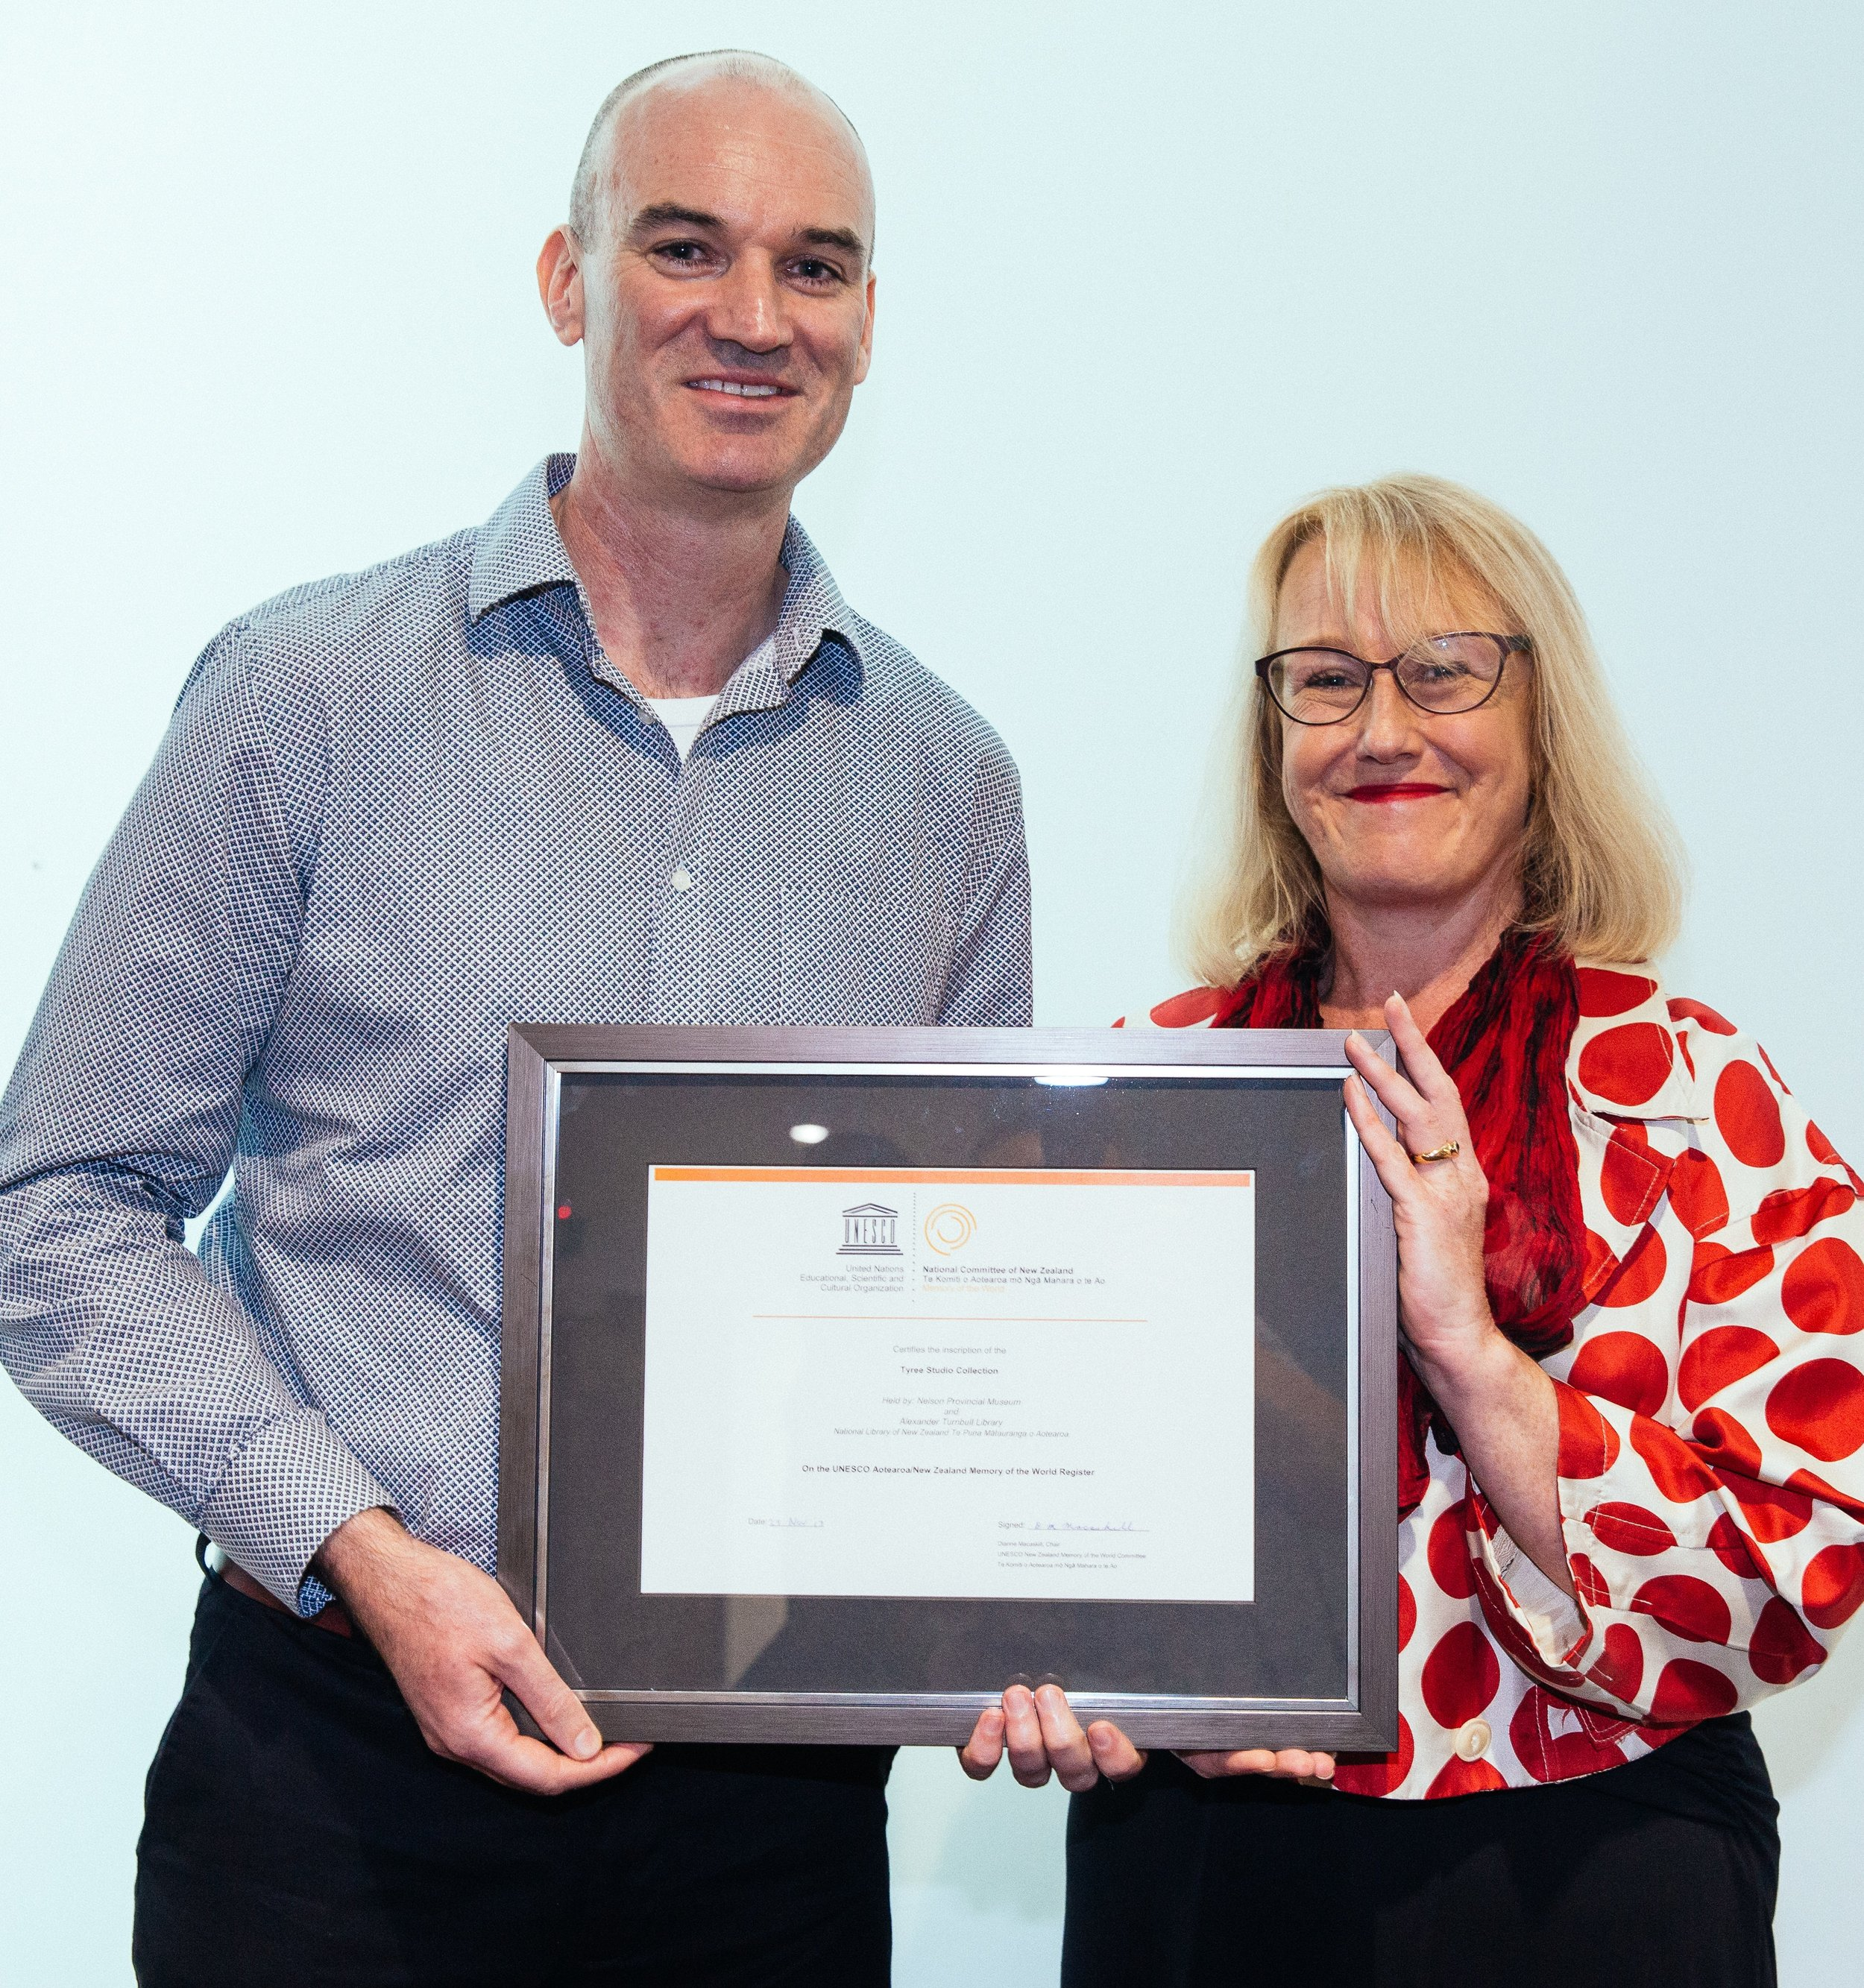 nelson provincial museum staff , Darryl gallagher - senior curator of photography and lucinda blackley-jimson - chief executive, with the unessco inscription